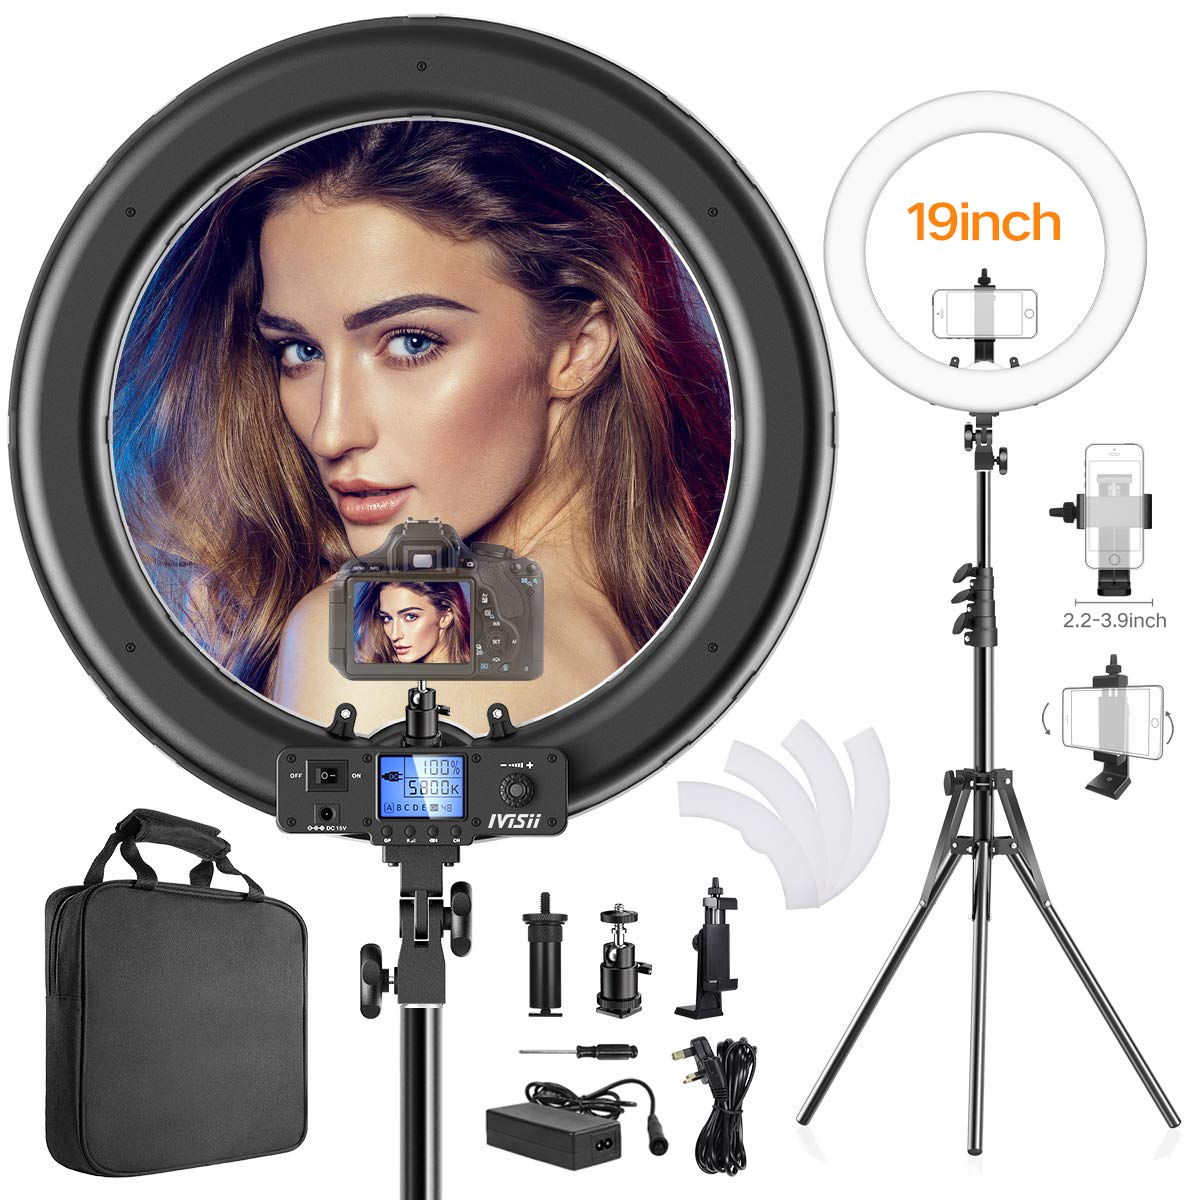 Ring Light,Upgraded Version 19inch with LCD Display Adjustable Color Temperature 3000K-5800K with Stand, YouTube Makeup Dimmable Video LED Light Kit, for Video Shooting, Portrait, Vlog, Selfie by IVISII